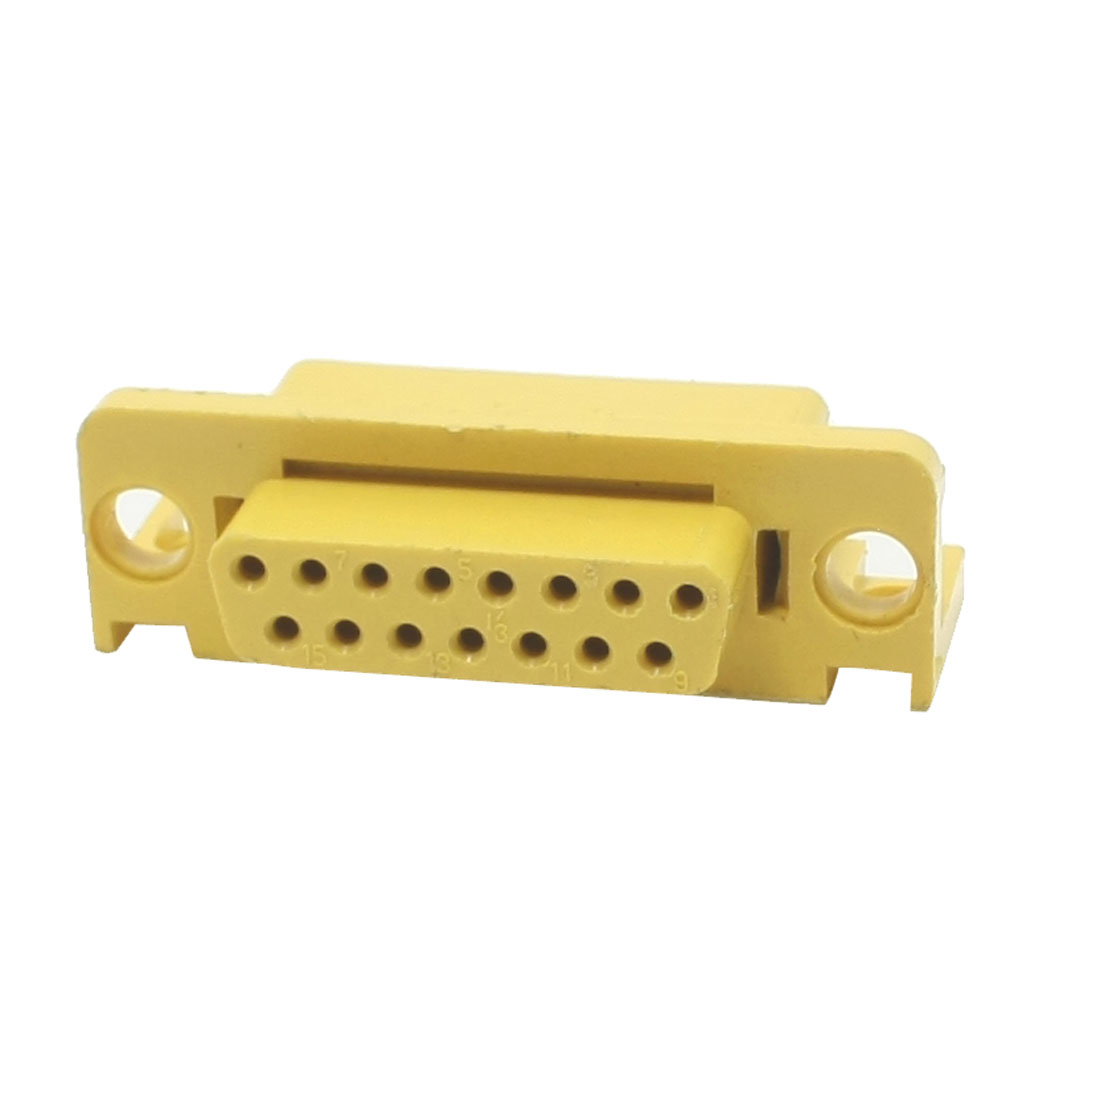 Yellow Plastic Shell without Pin for DB15 Female D-sub Connector Socket DIY